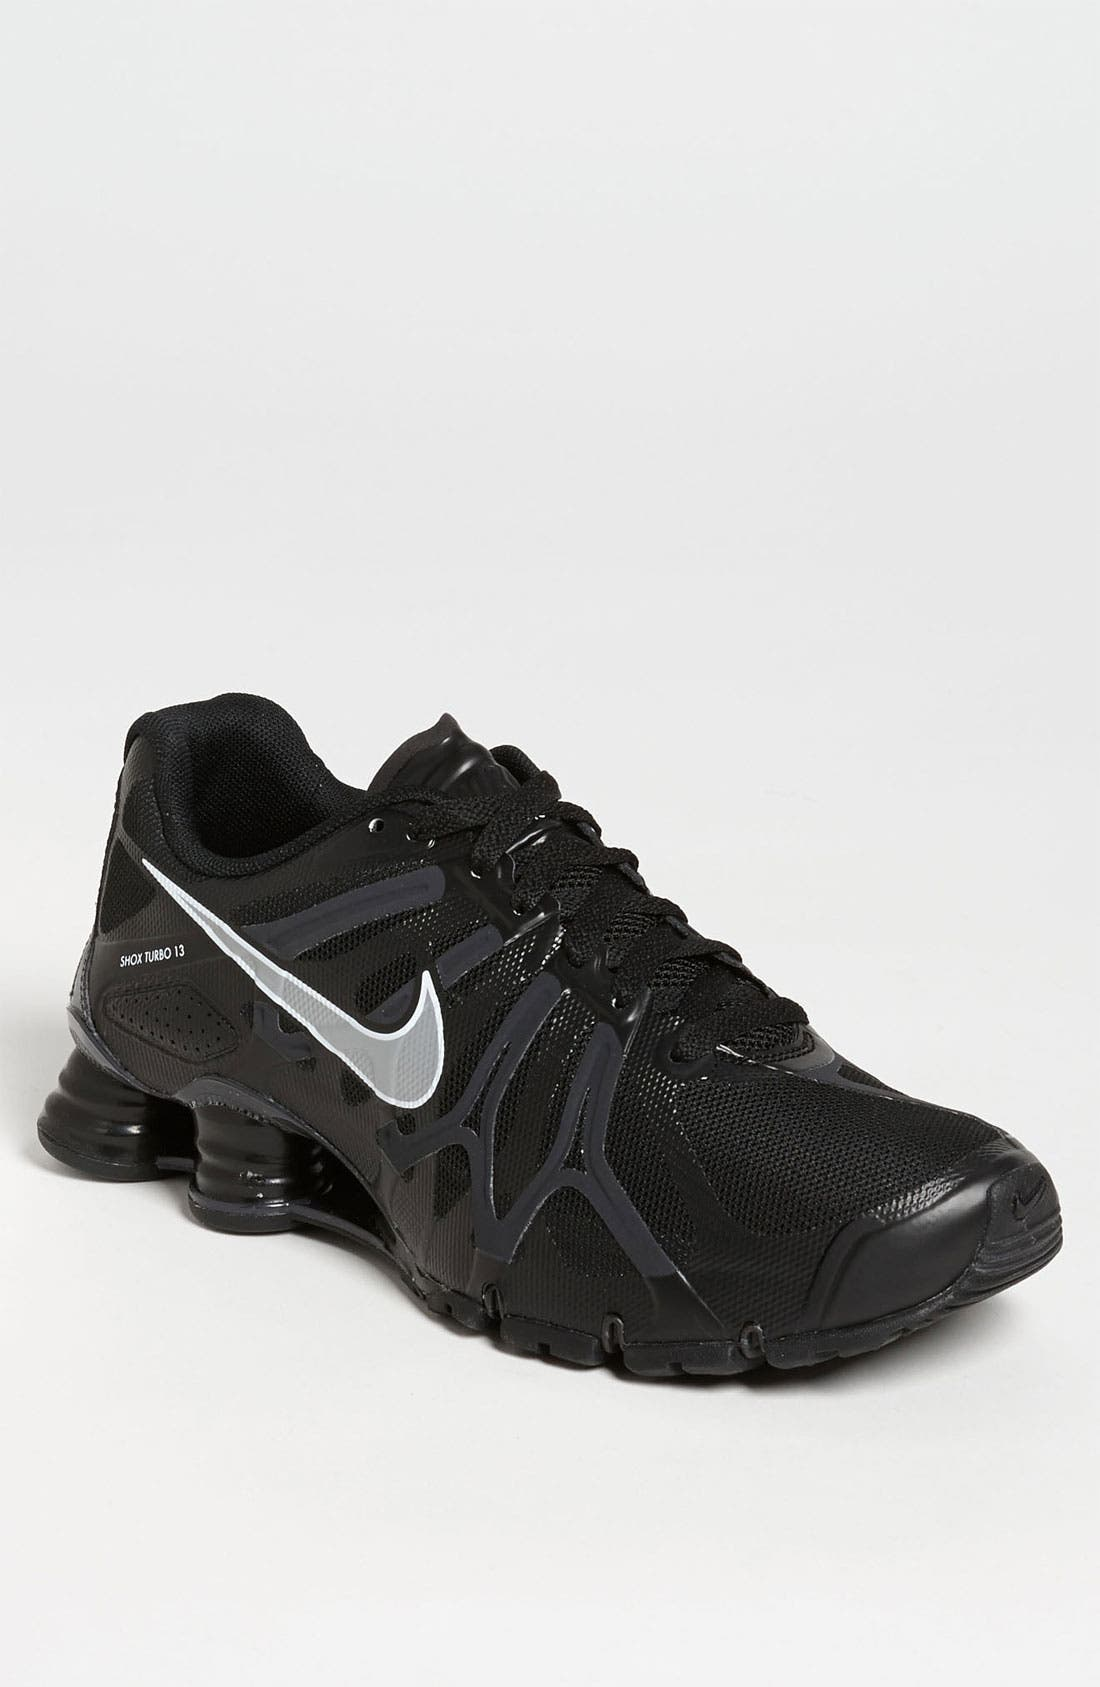 Alternate Image 1 Selected - Nike 'Shox Turbo+ 13' Running Shoe (Men)